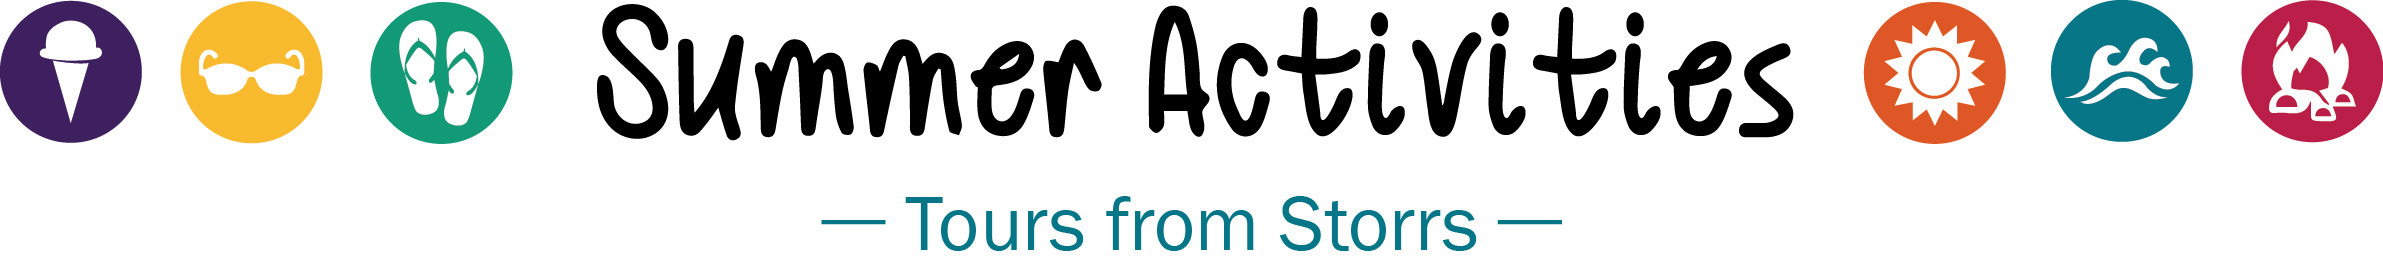 summer activities logo tours from storrs web